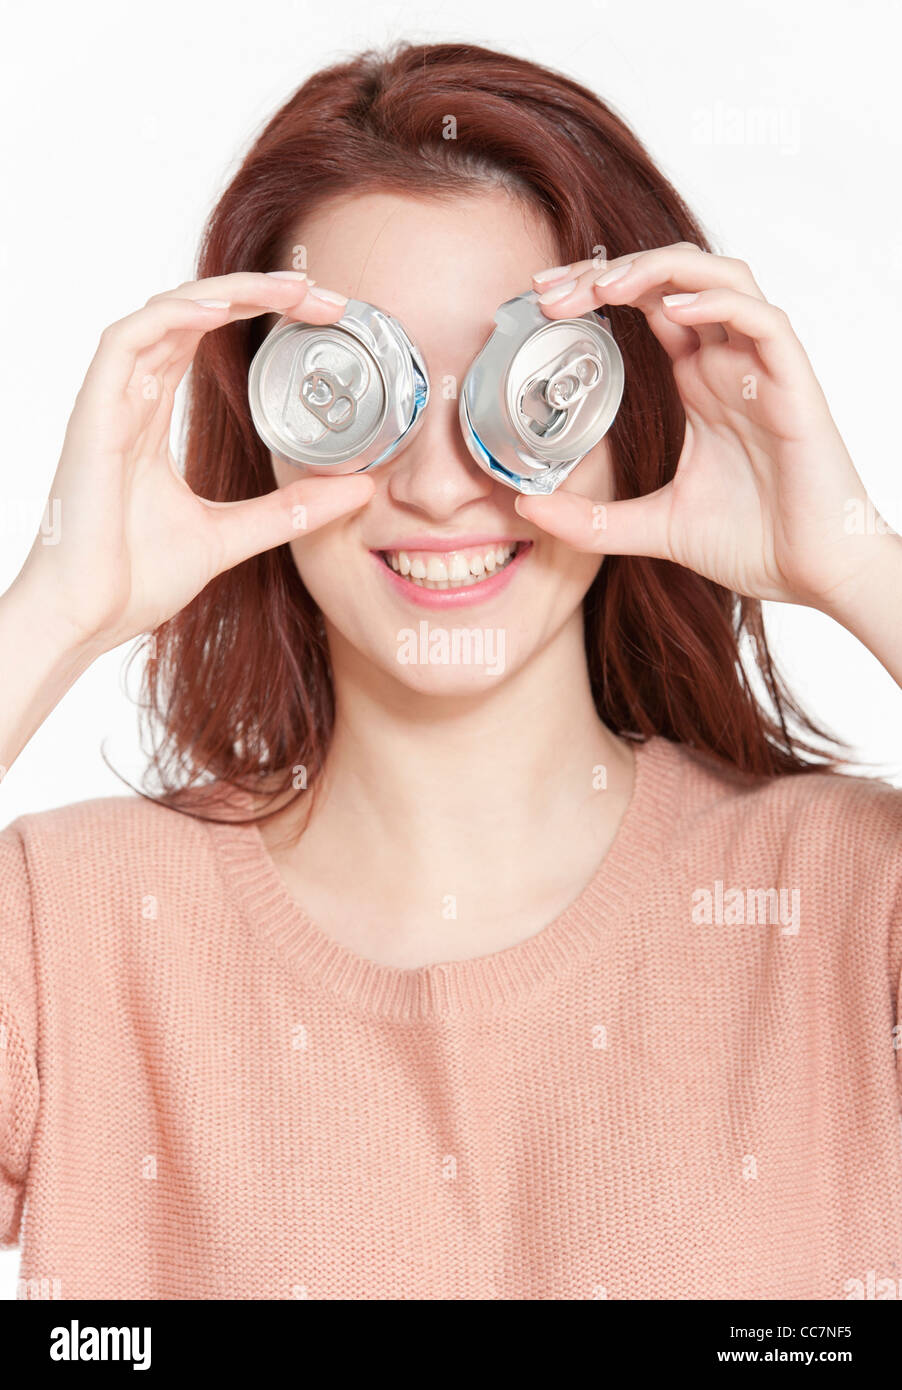 Young woman holding two crushed drink cans in front of face - Stock Image